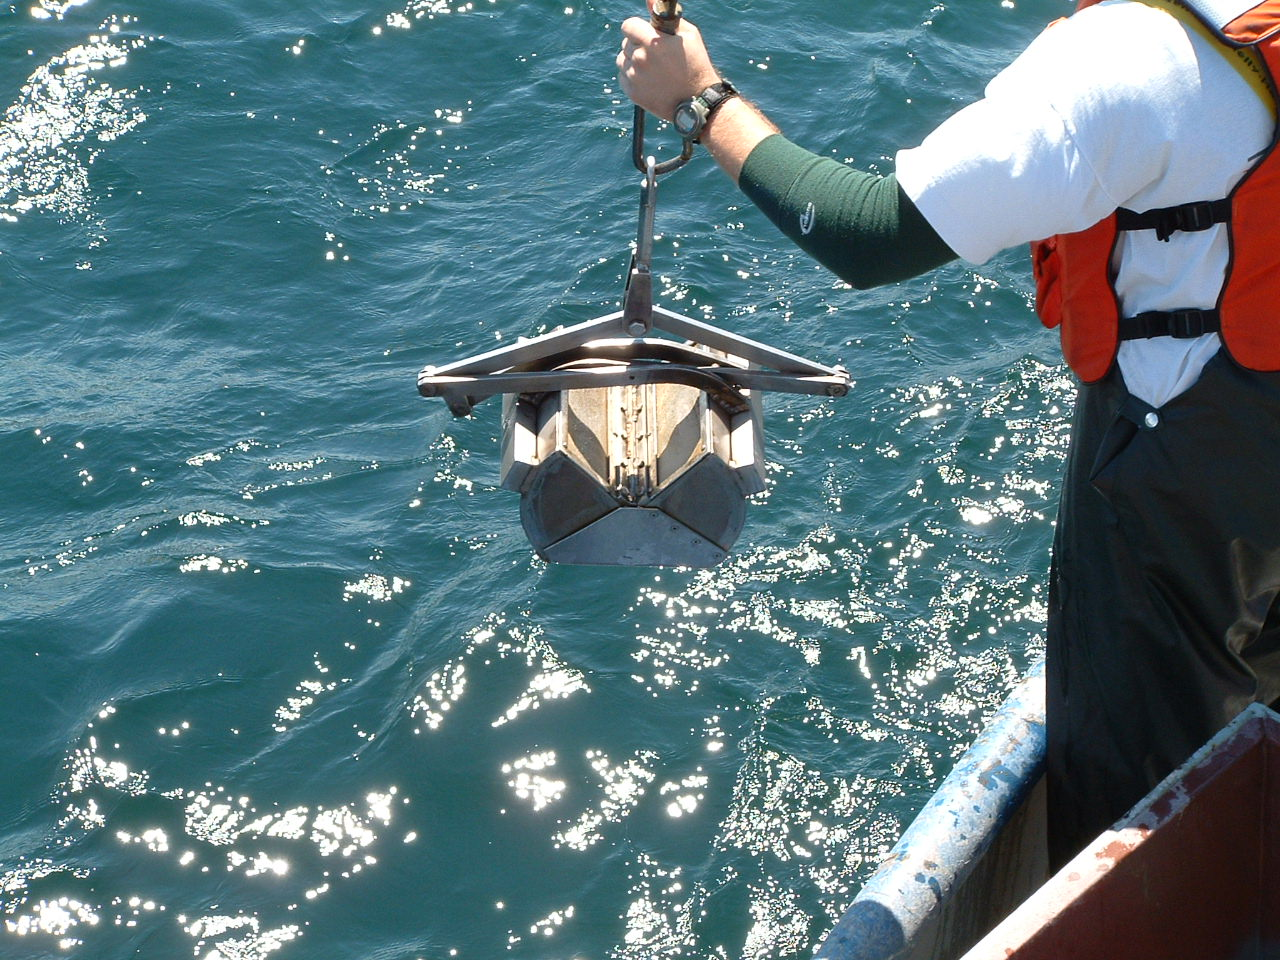 A sampling device called a Ponar Grab is lowered in Lake Erie's Central Basin to collect bottom-dwelling invertebrates. The work was part of a study examining the impacts of low-oxygen hypoxic zones in the lake. Image credit: James Roberts